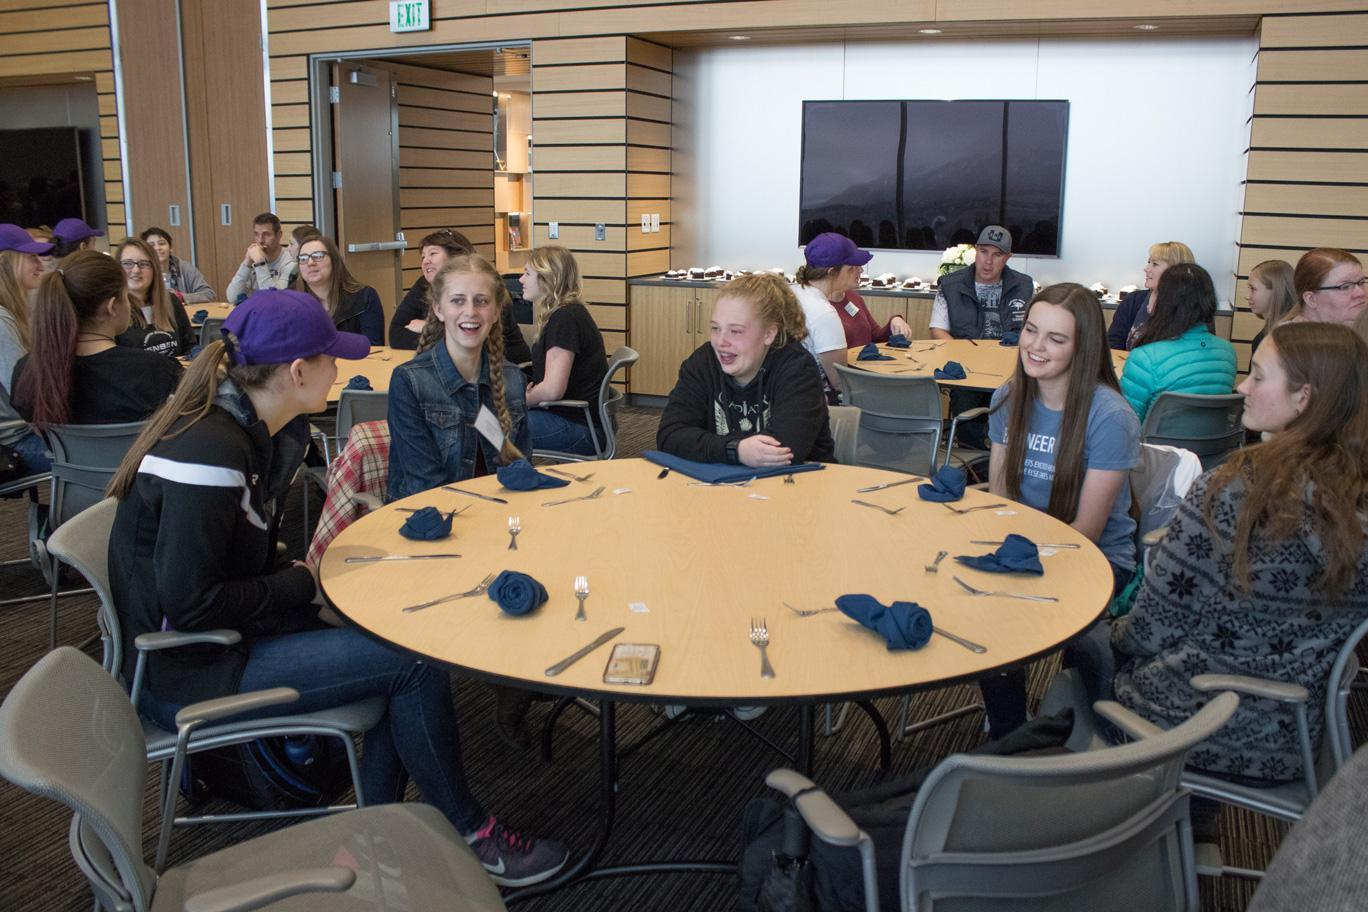 Group of females at table